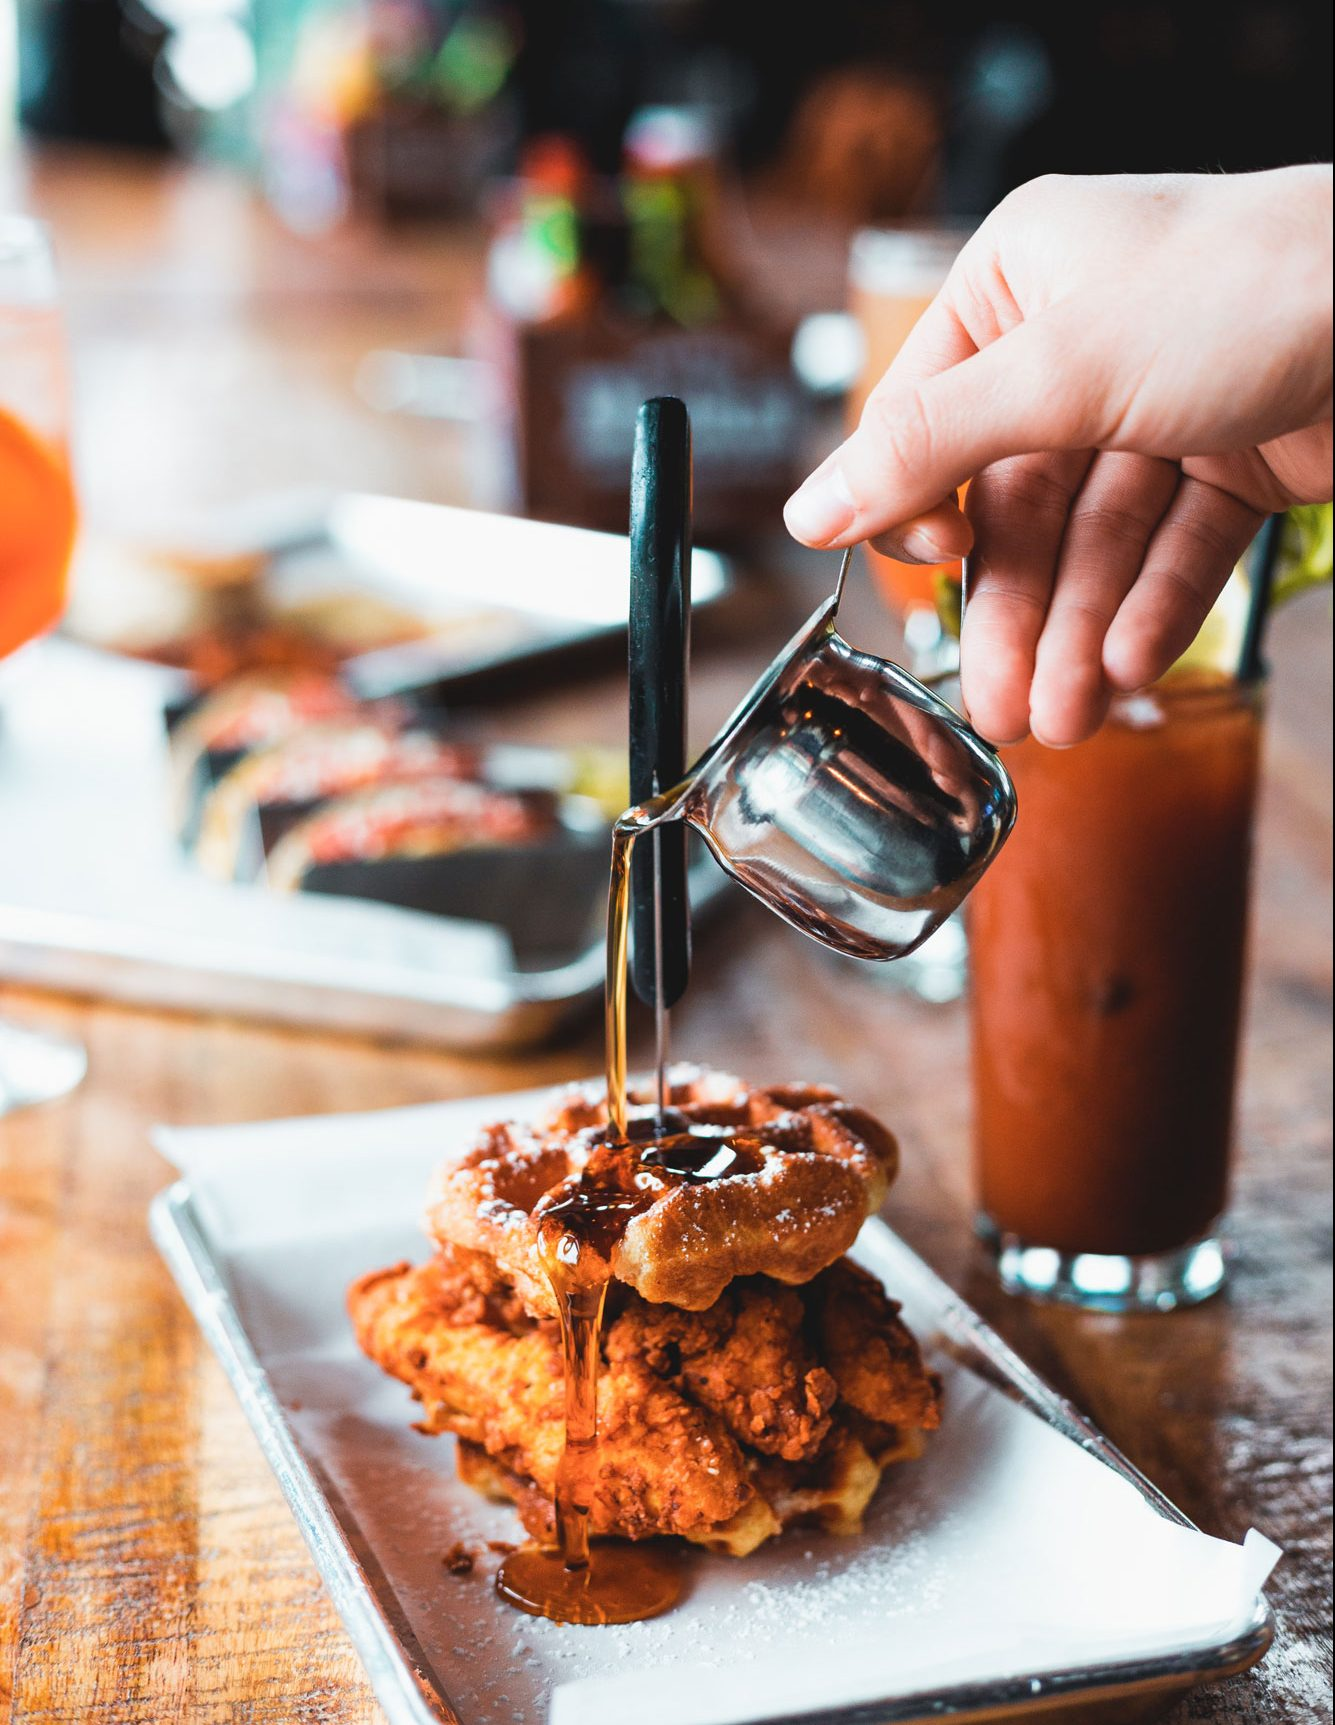 A person pouring syrup on a plate of chicken and waffles.